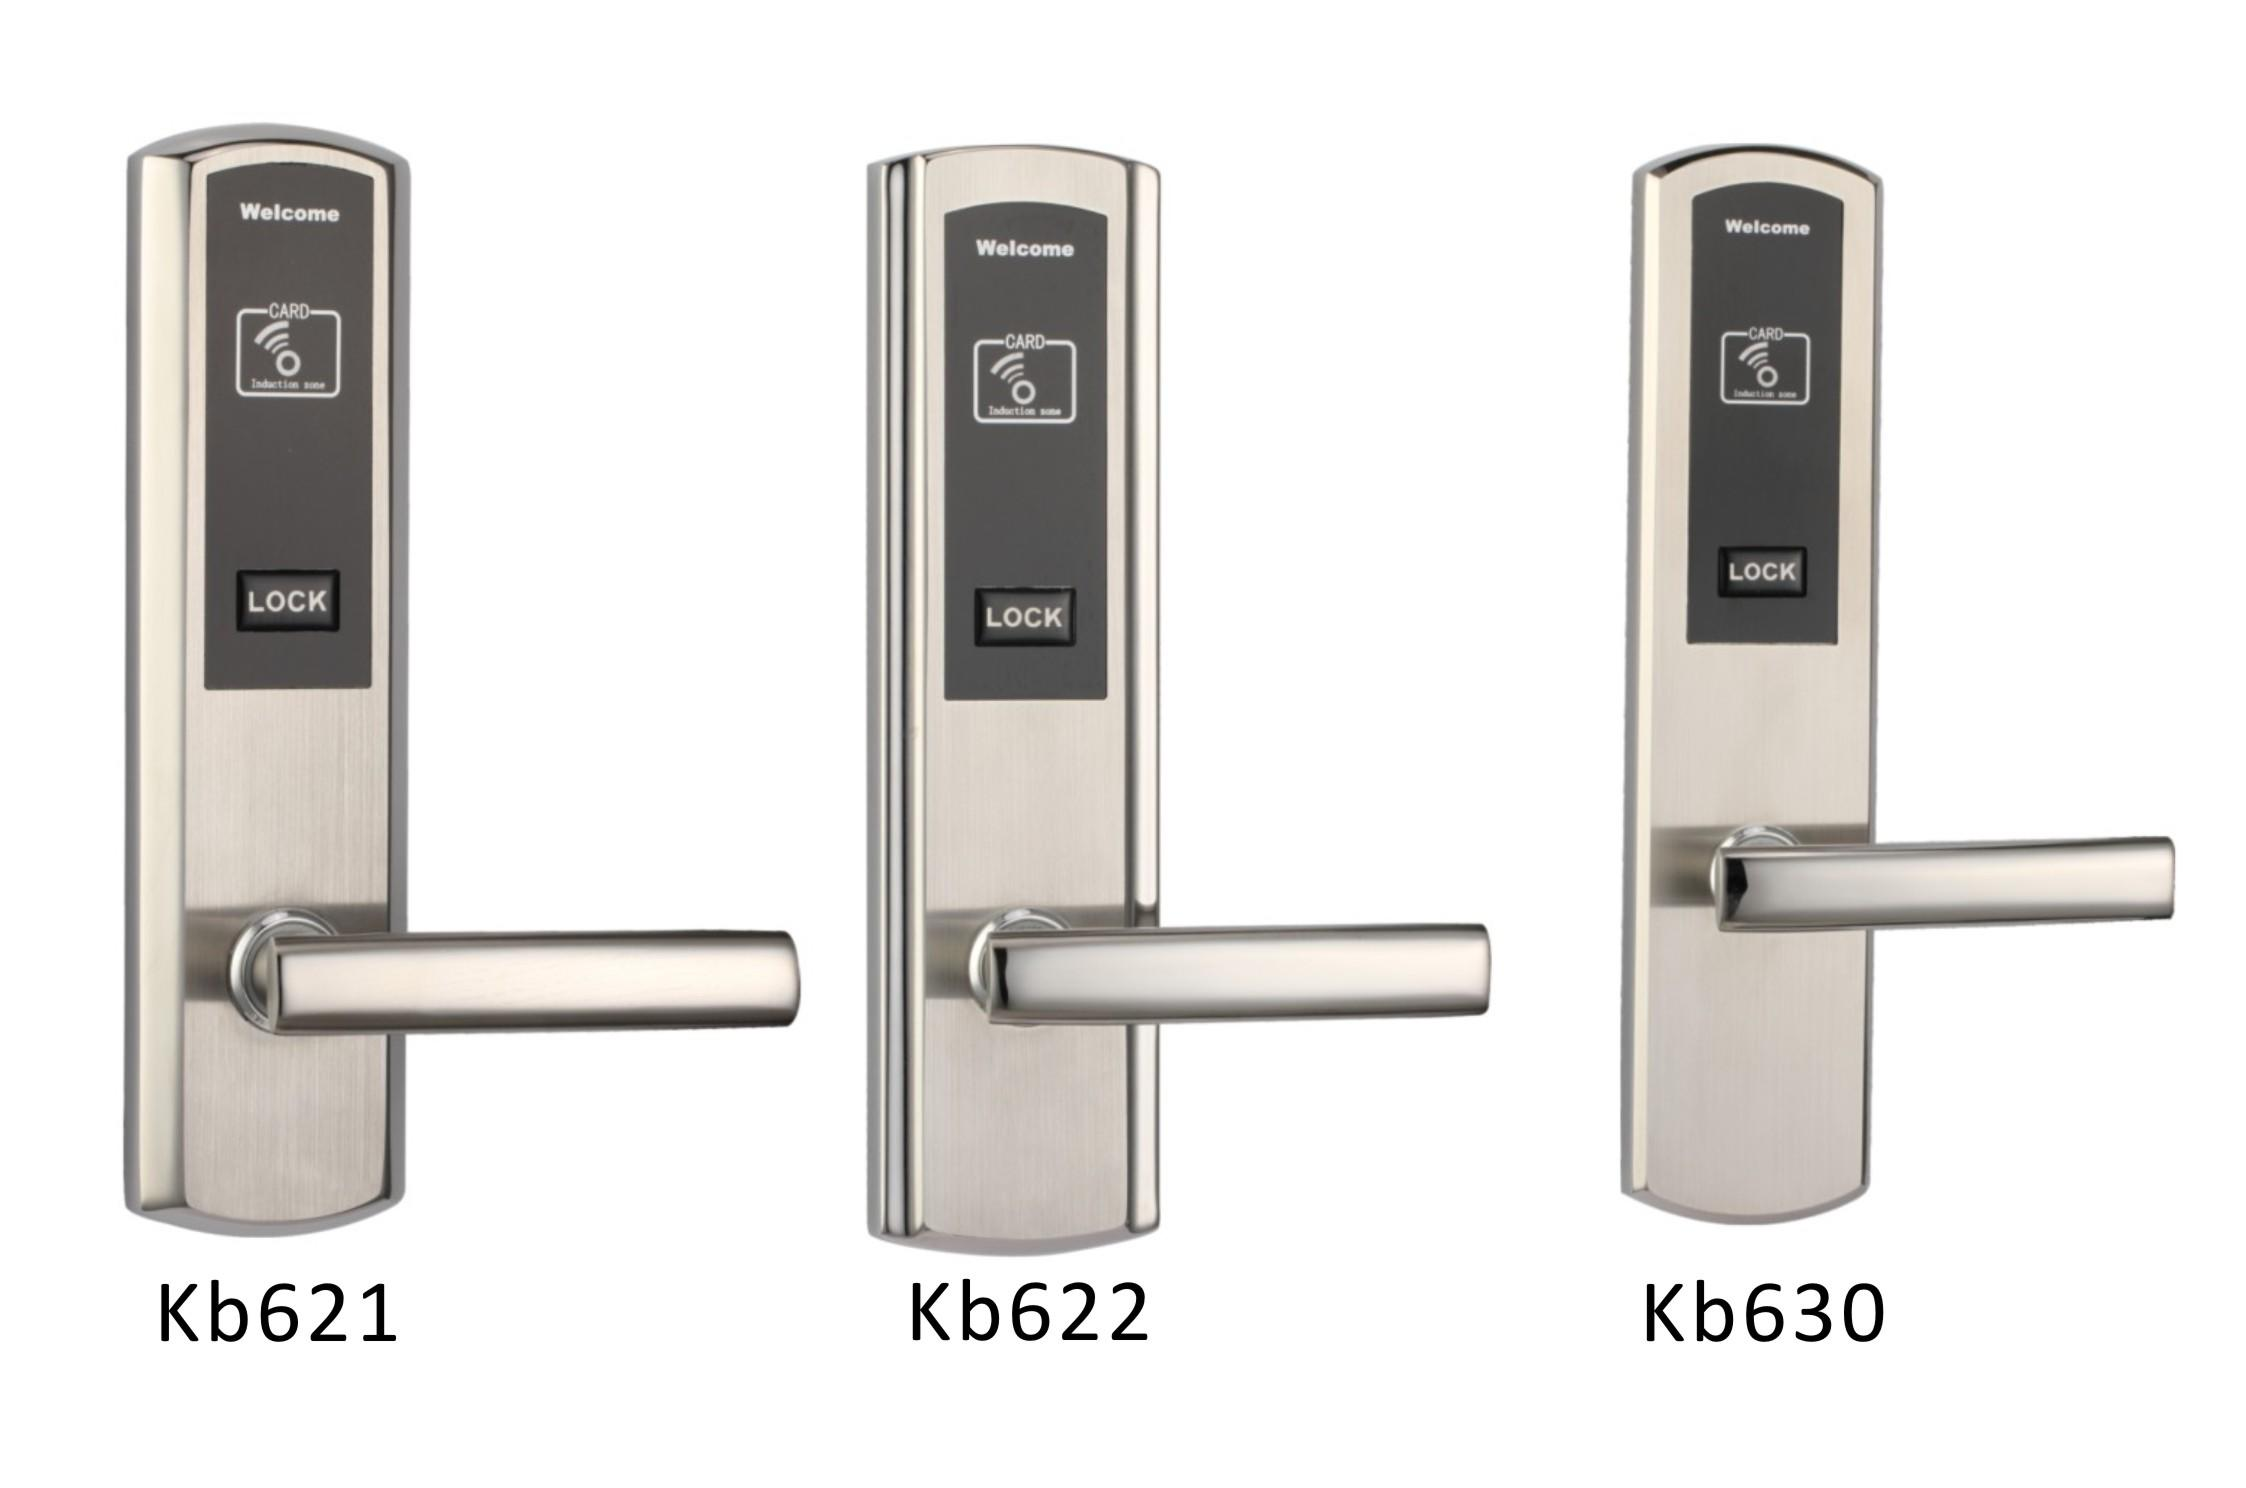 Eversunny reliable card entry door locks with central management control system for door-1